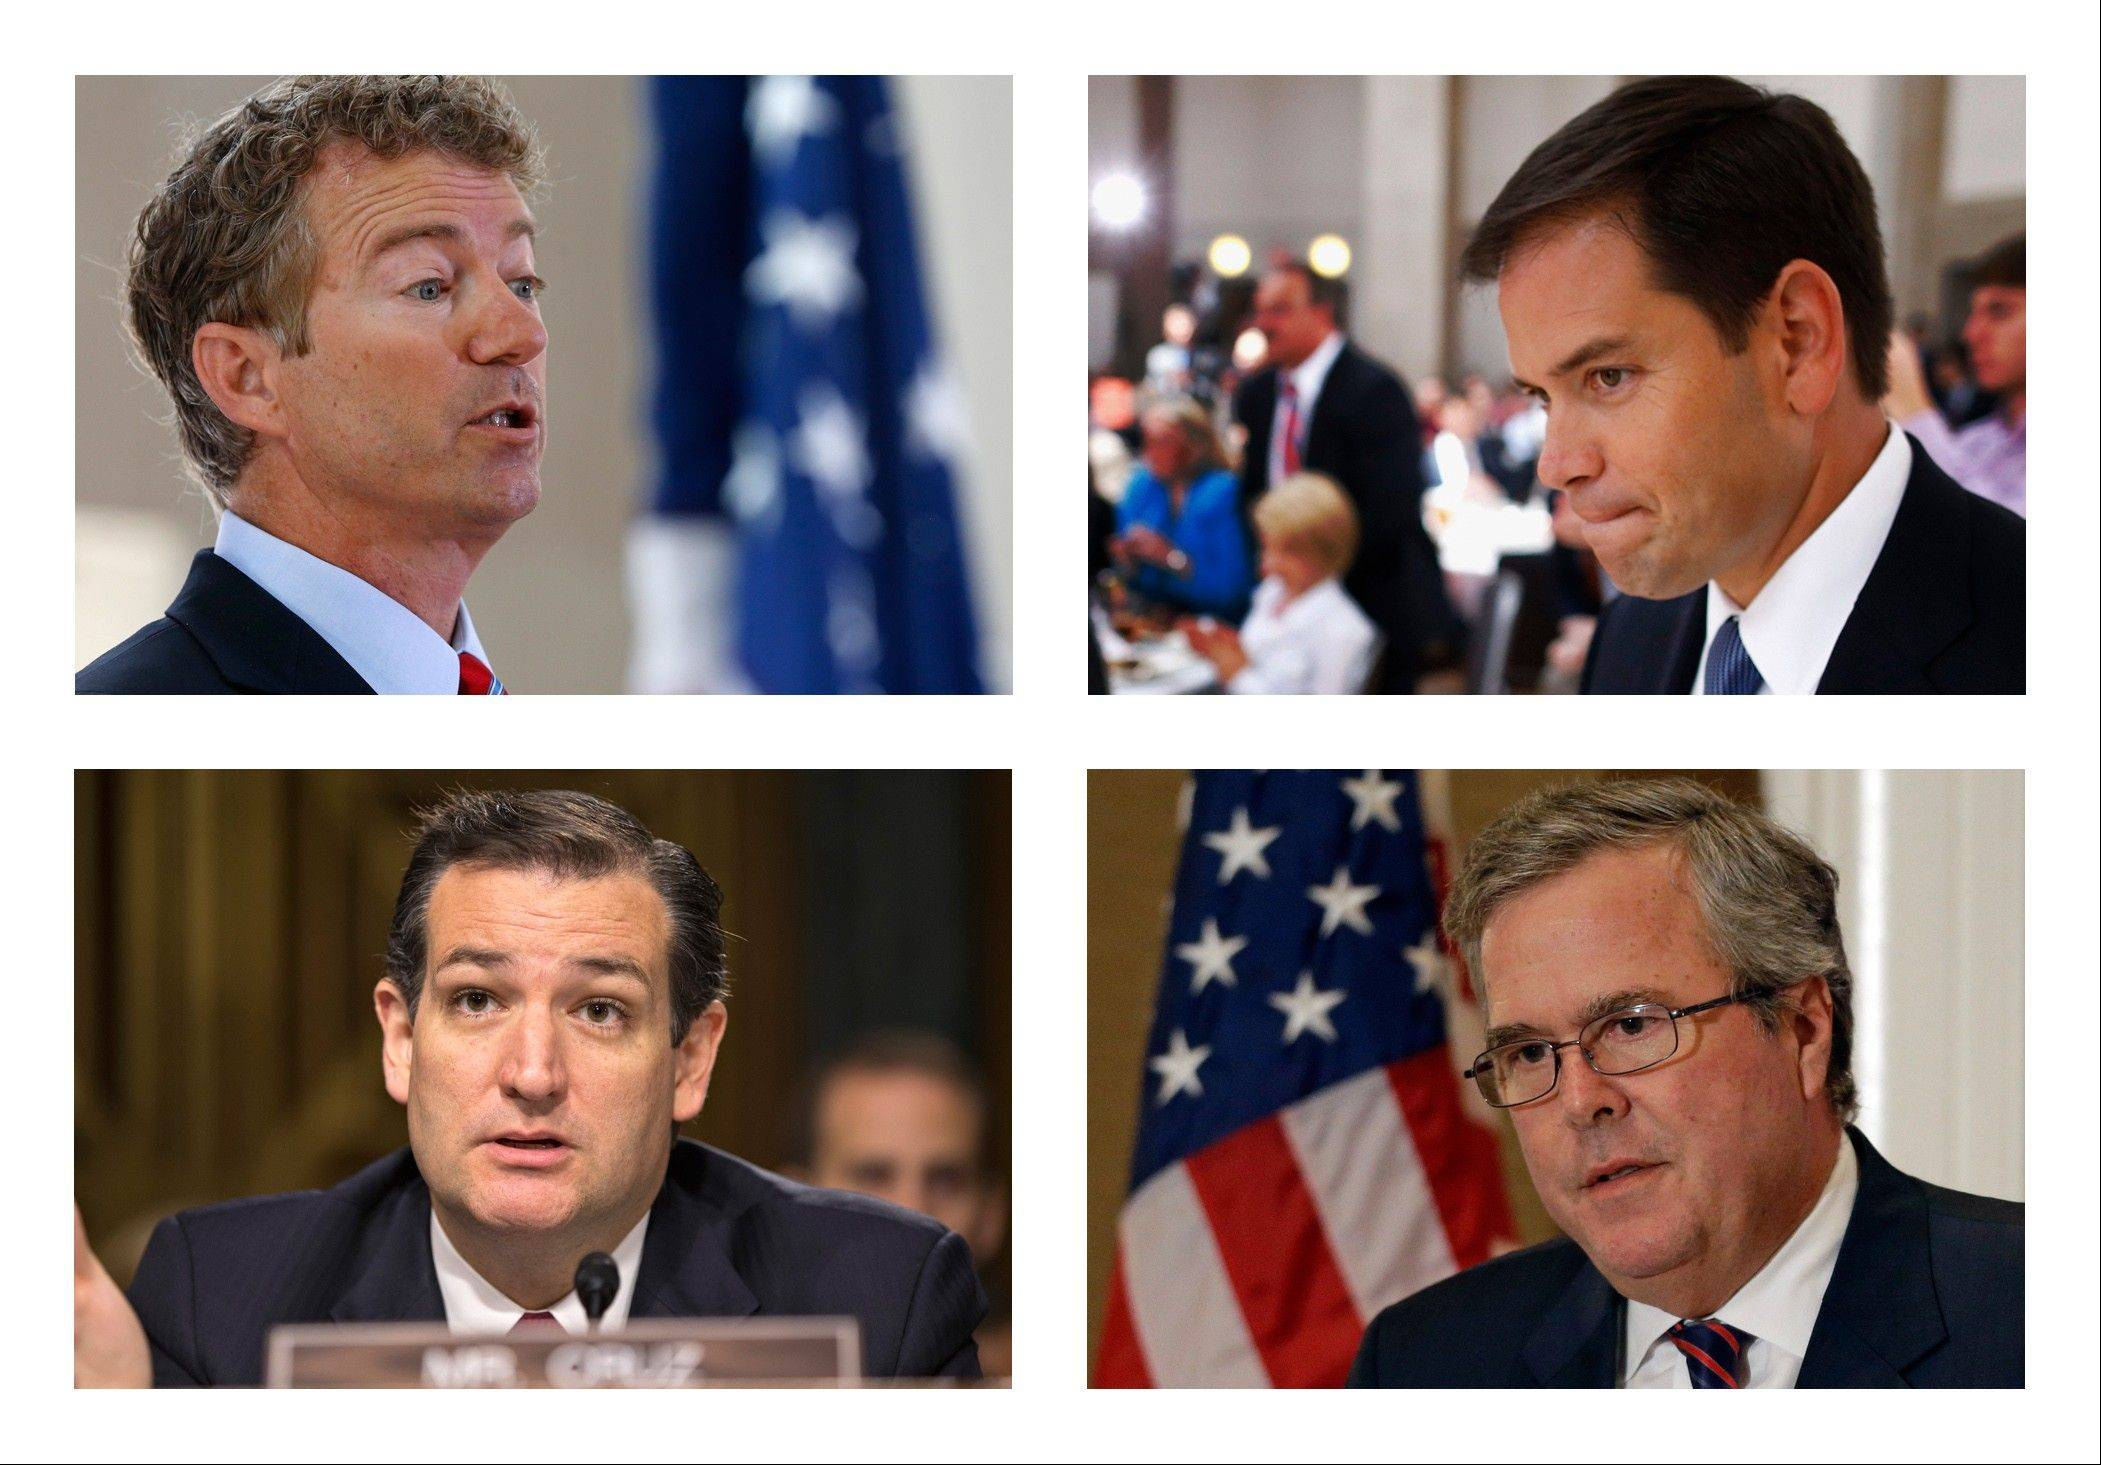 This combination of 2013 file photos shows, from left, top row, Sen. Rand Paul, R-Ky. and Sen. Marco Rubio, R-Fla. and bottom row, Sen. Ted Cruz, R-Texas and former Florida Gov. Jeb Bush. Pivotal developments on two cultural issues - immigration reform and gay marriage - offer an early preview of potential fault lines among Republicans weighing White House bids in 2016.